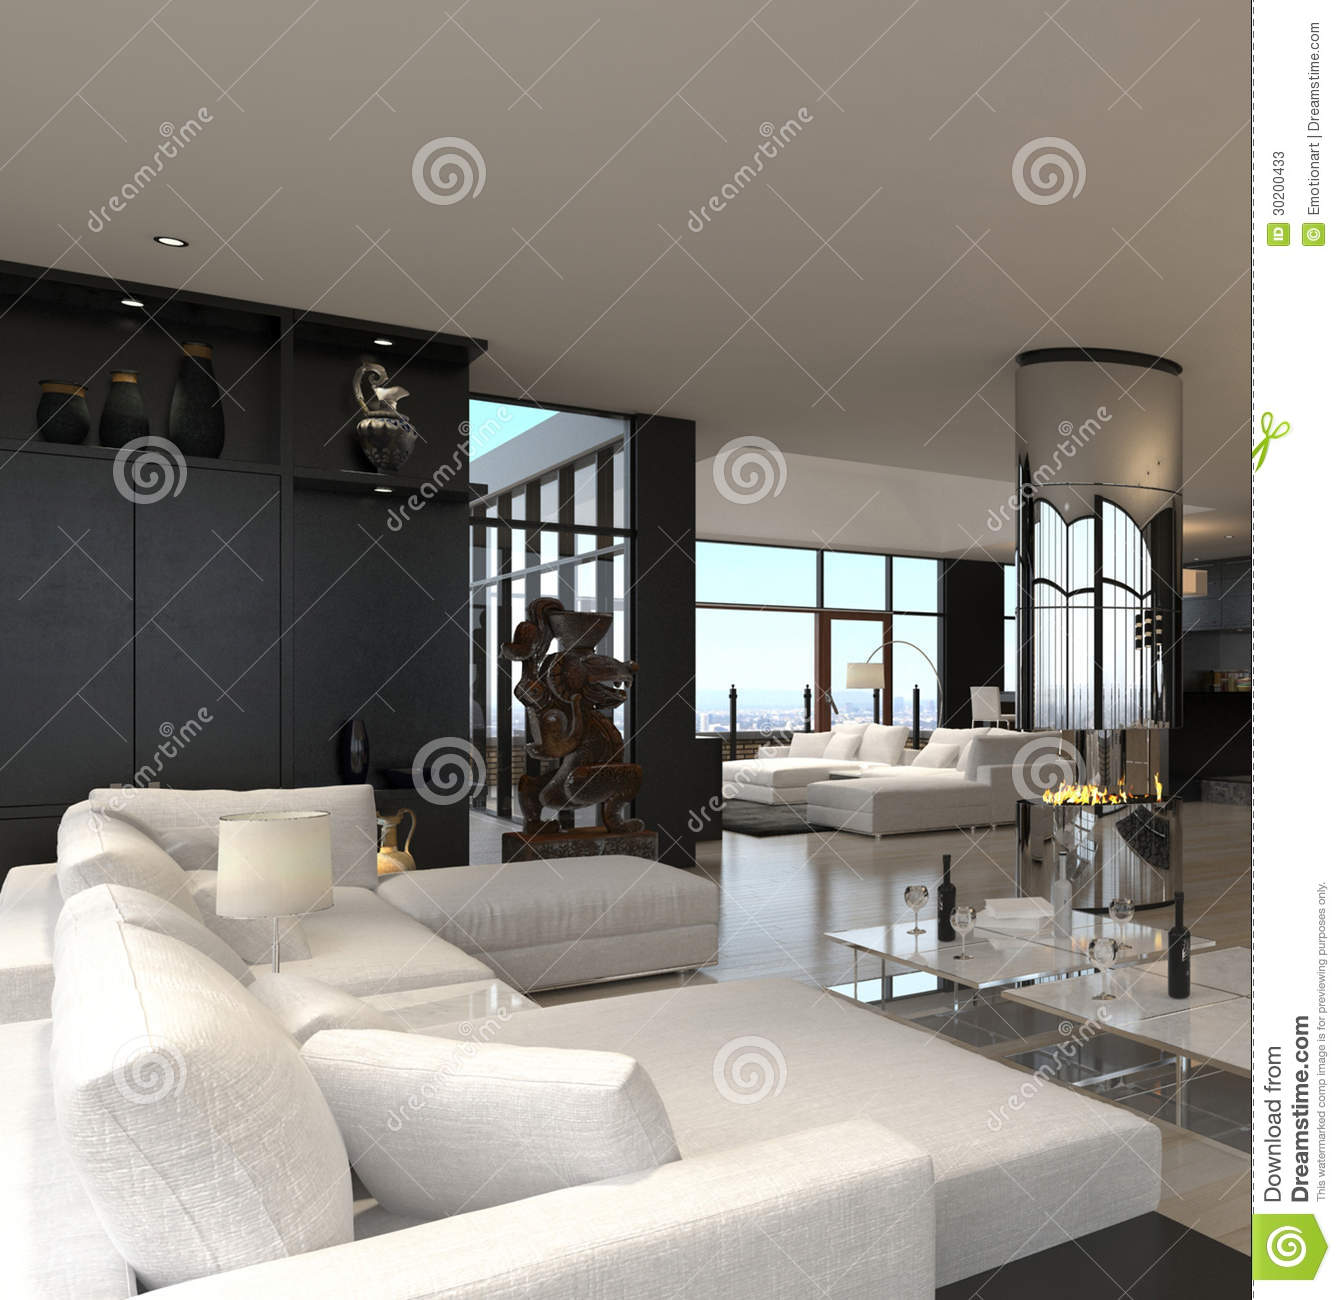 Interior Of Modern Living Room In Flat Design Stock Vector: Modern Living Room Interior